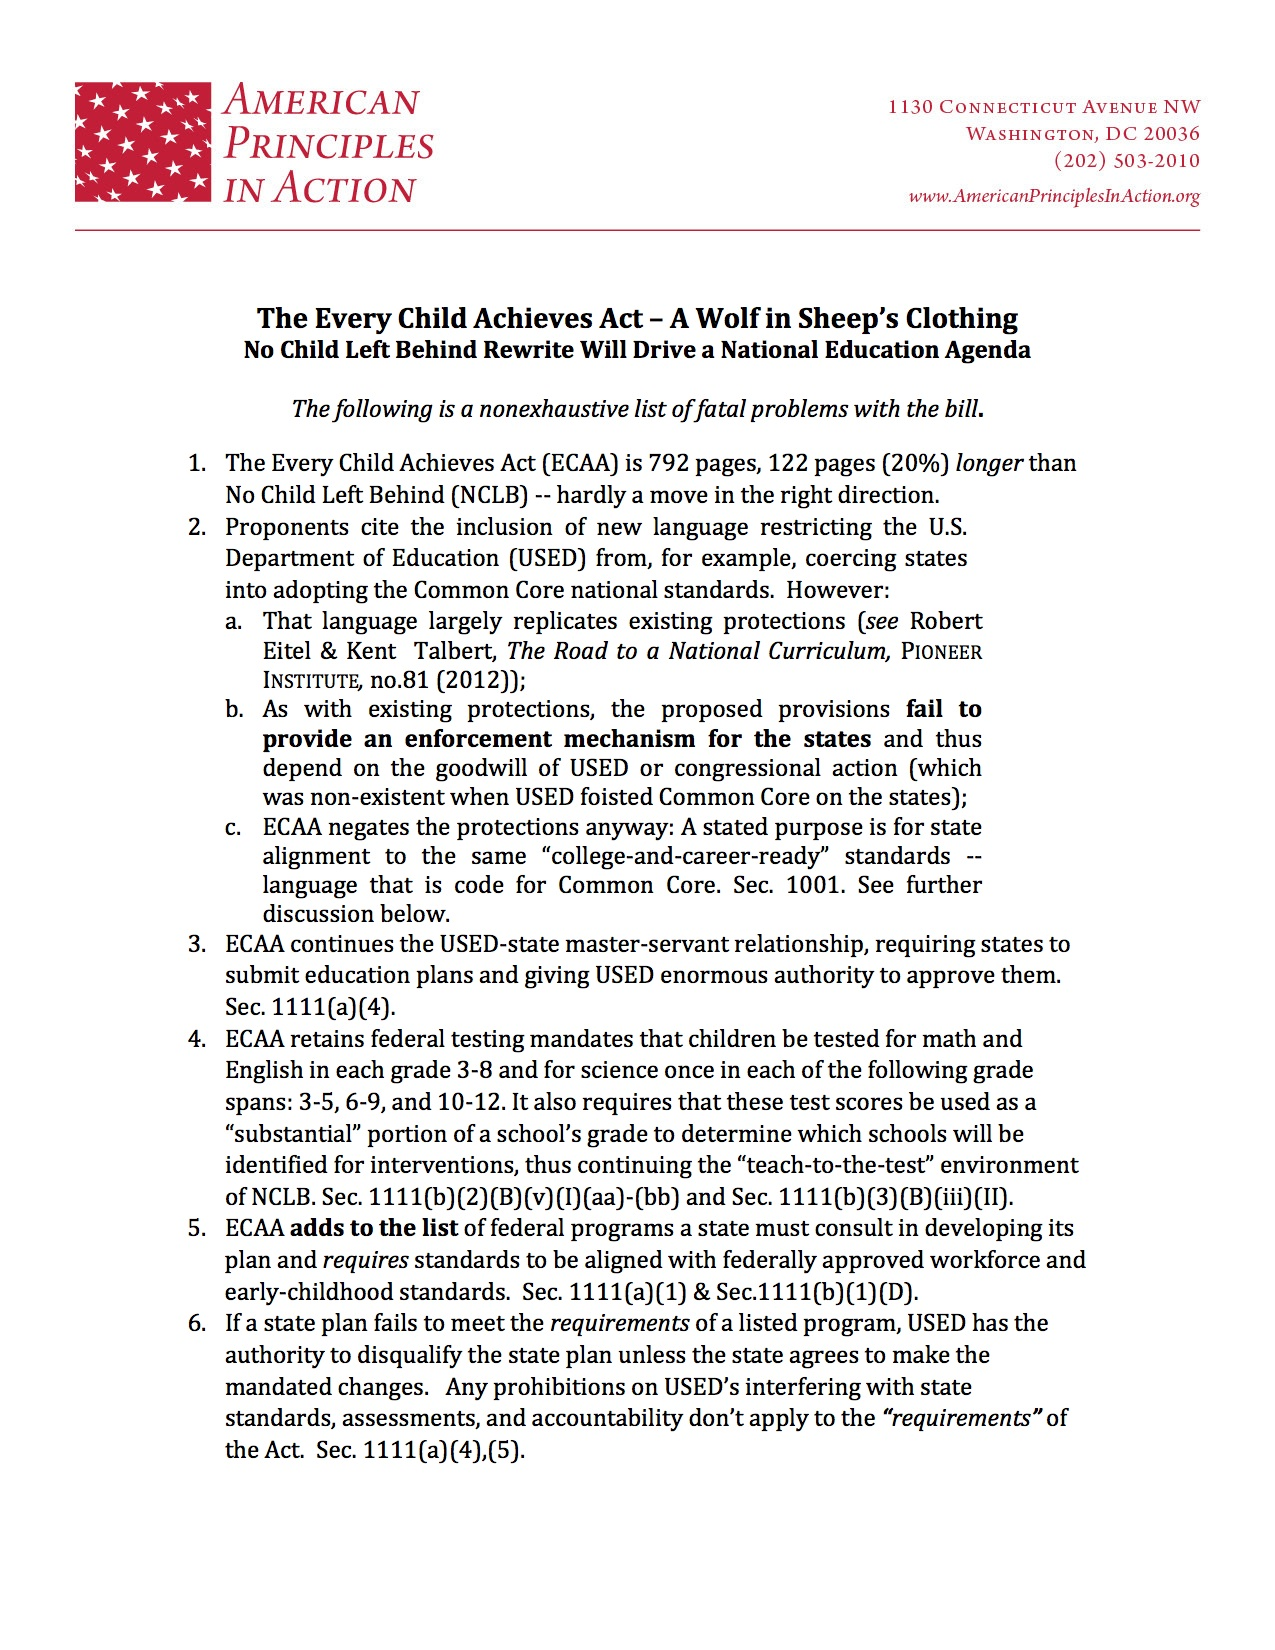 talking points template word - ecaa talking points stop common core in washington state